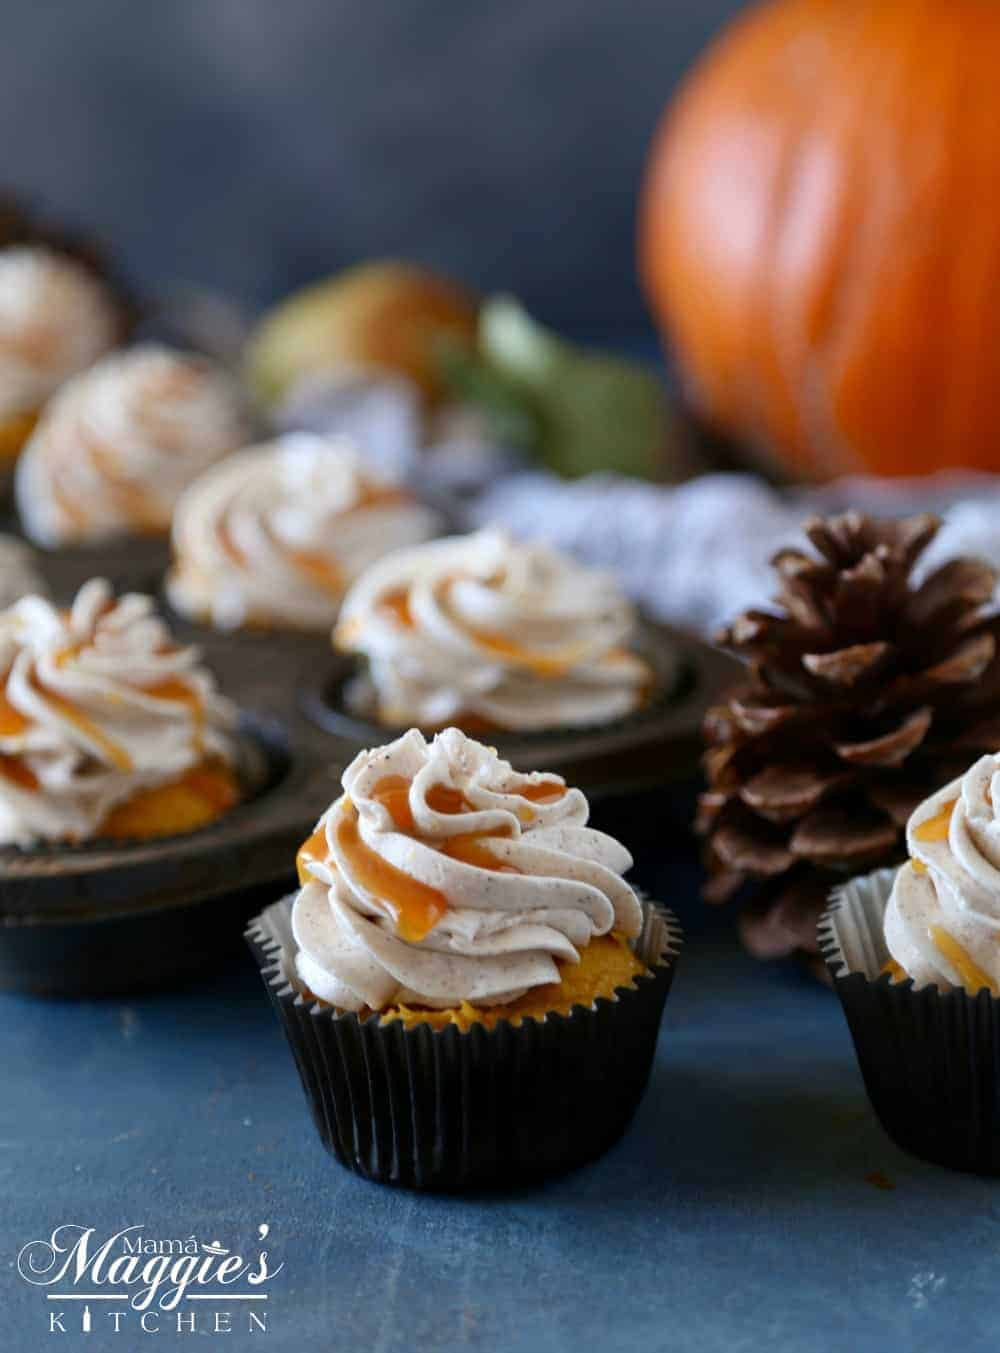 Pumpkin cupcakes topped with frosting and drizzled with cajeta next to a pine cone and an orange pumpkin.